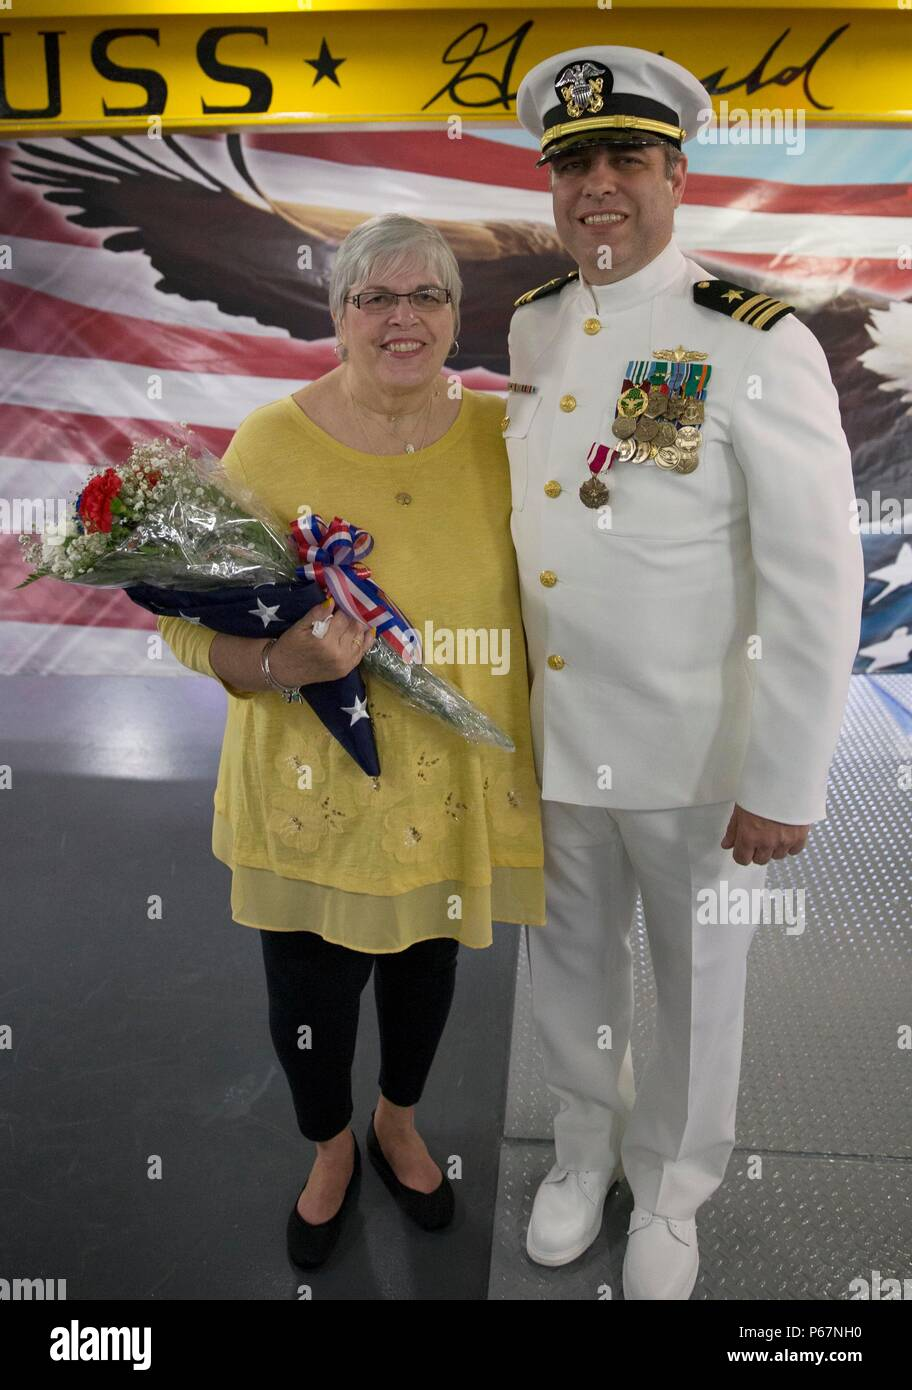 NEWPORT NEWS, Va. (May 13, 2016) --Lt. Cmdr. Michael Stone, assigned to Pre-Commissioning Unit Gerald R. Ford (CVN 78), poses with his mother, Pamela S. Stone, following his retirement ceremony in the ship's forecastle. Ford is the first of a new class of aircraft carriers currently under construction by Huntington Ingalls Industries Newport News Shipbuilding.  (U.S. Navy photo by Mass Communication Specialist Seaman Apprentice Connor Loessin/Released) - Stock Image